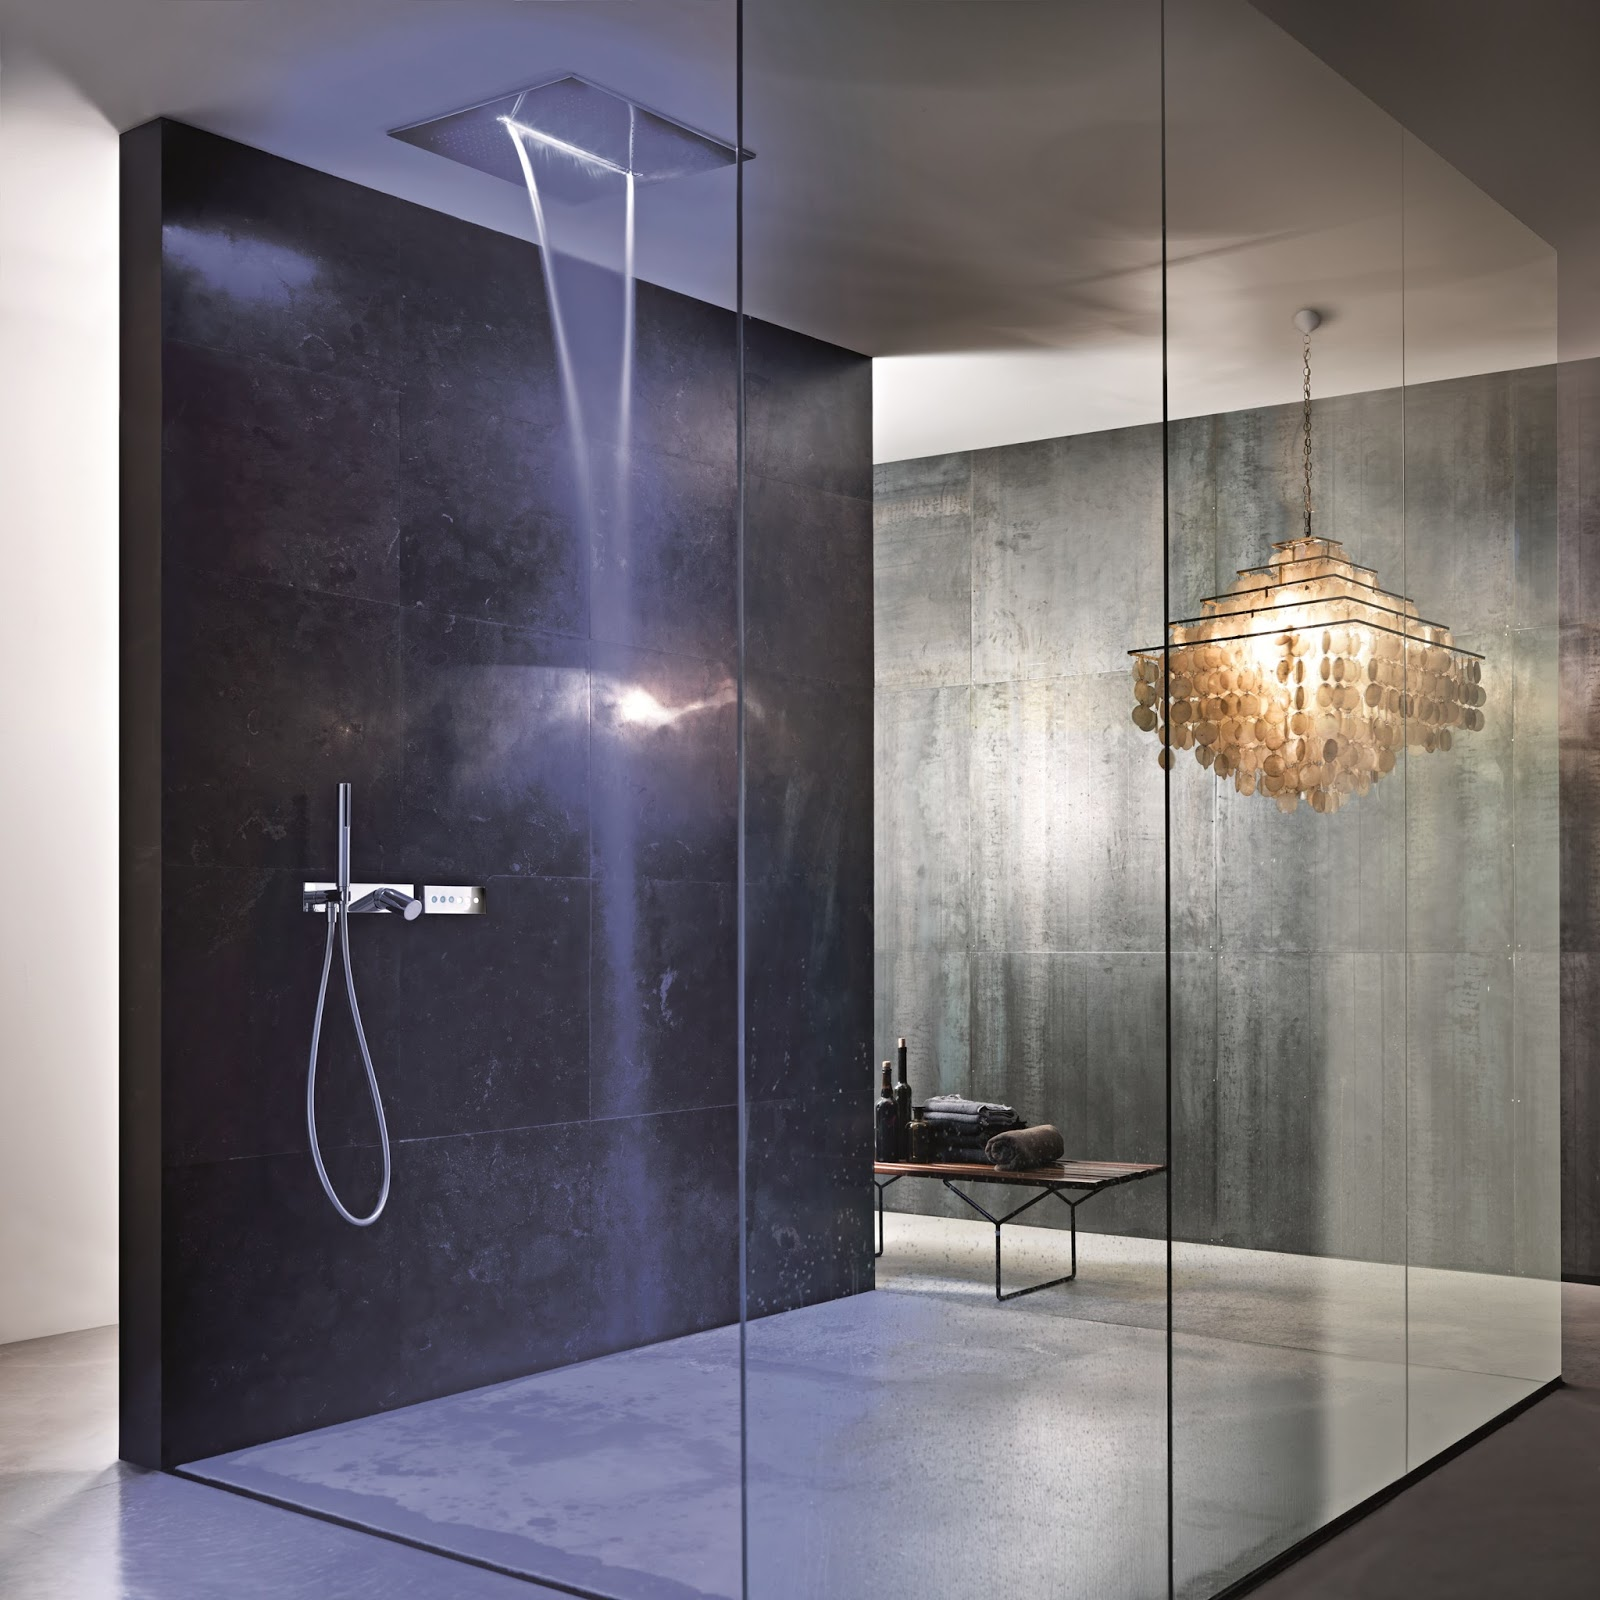 Most Beautiful Bathrooms Ever: Beautiful Bathrooms And Showers Design Ideas: Most